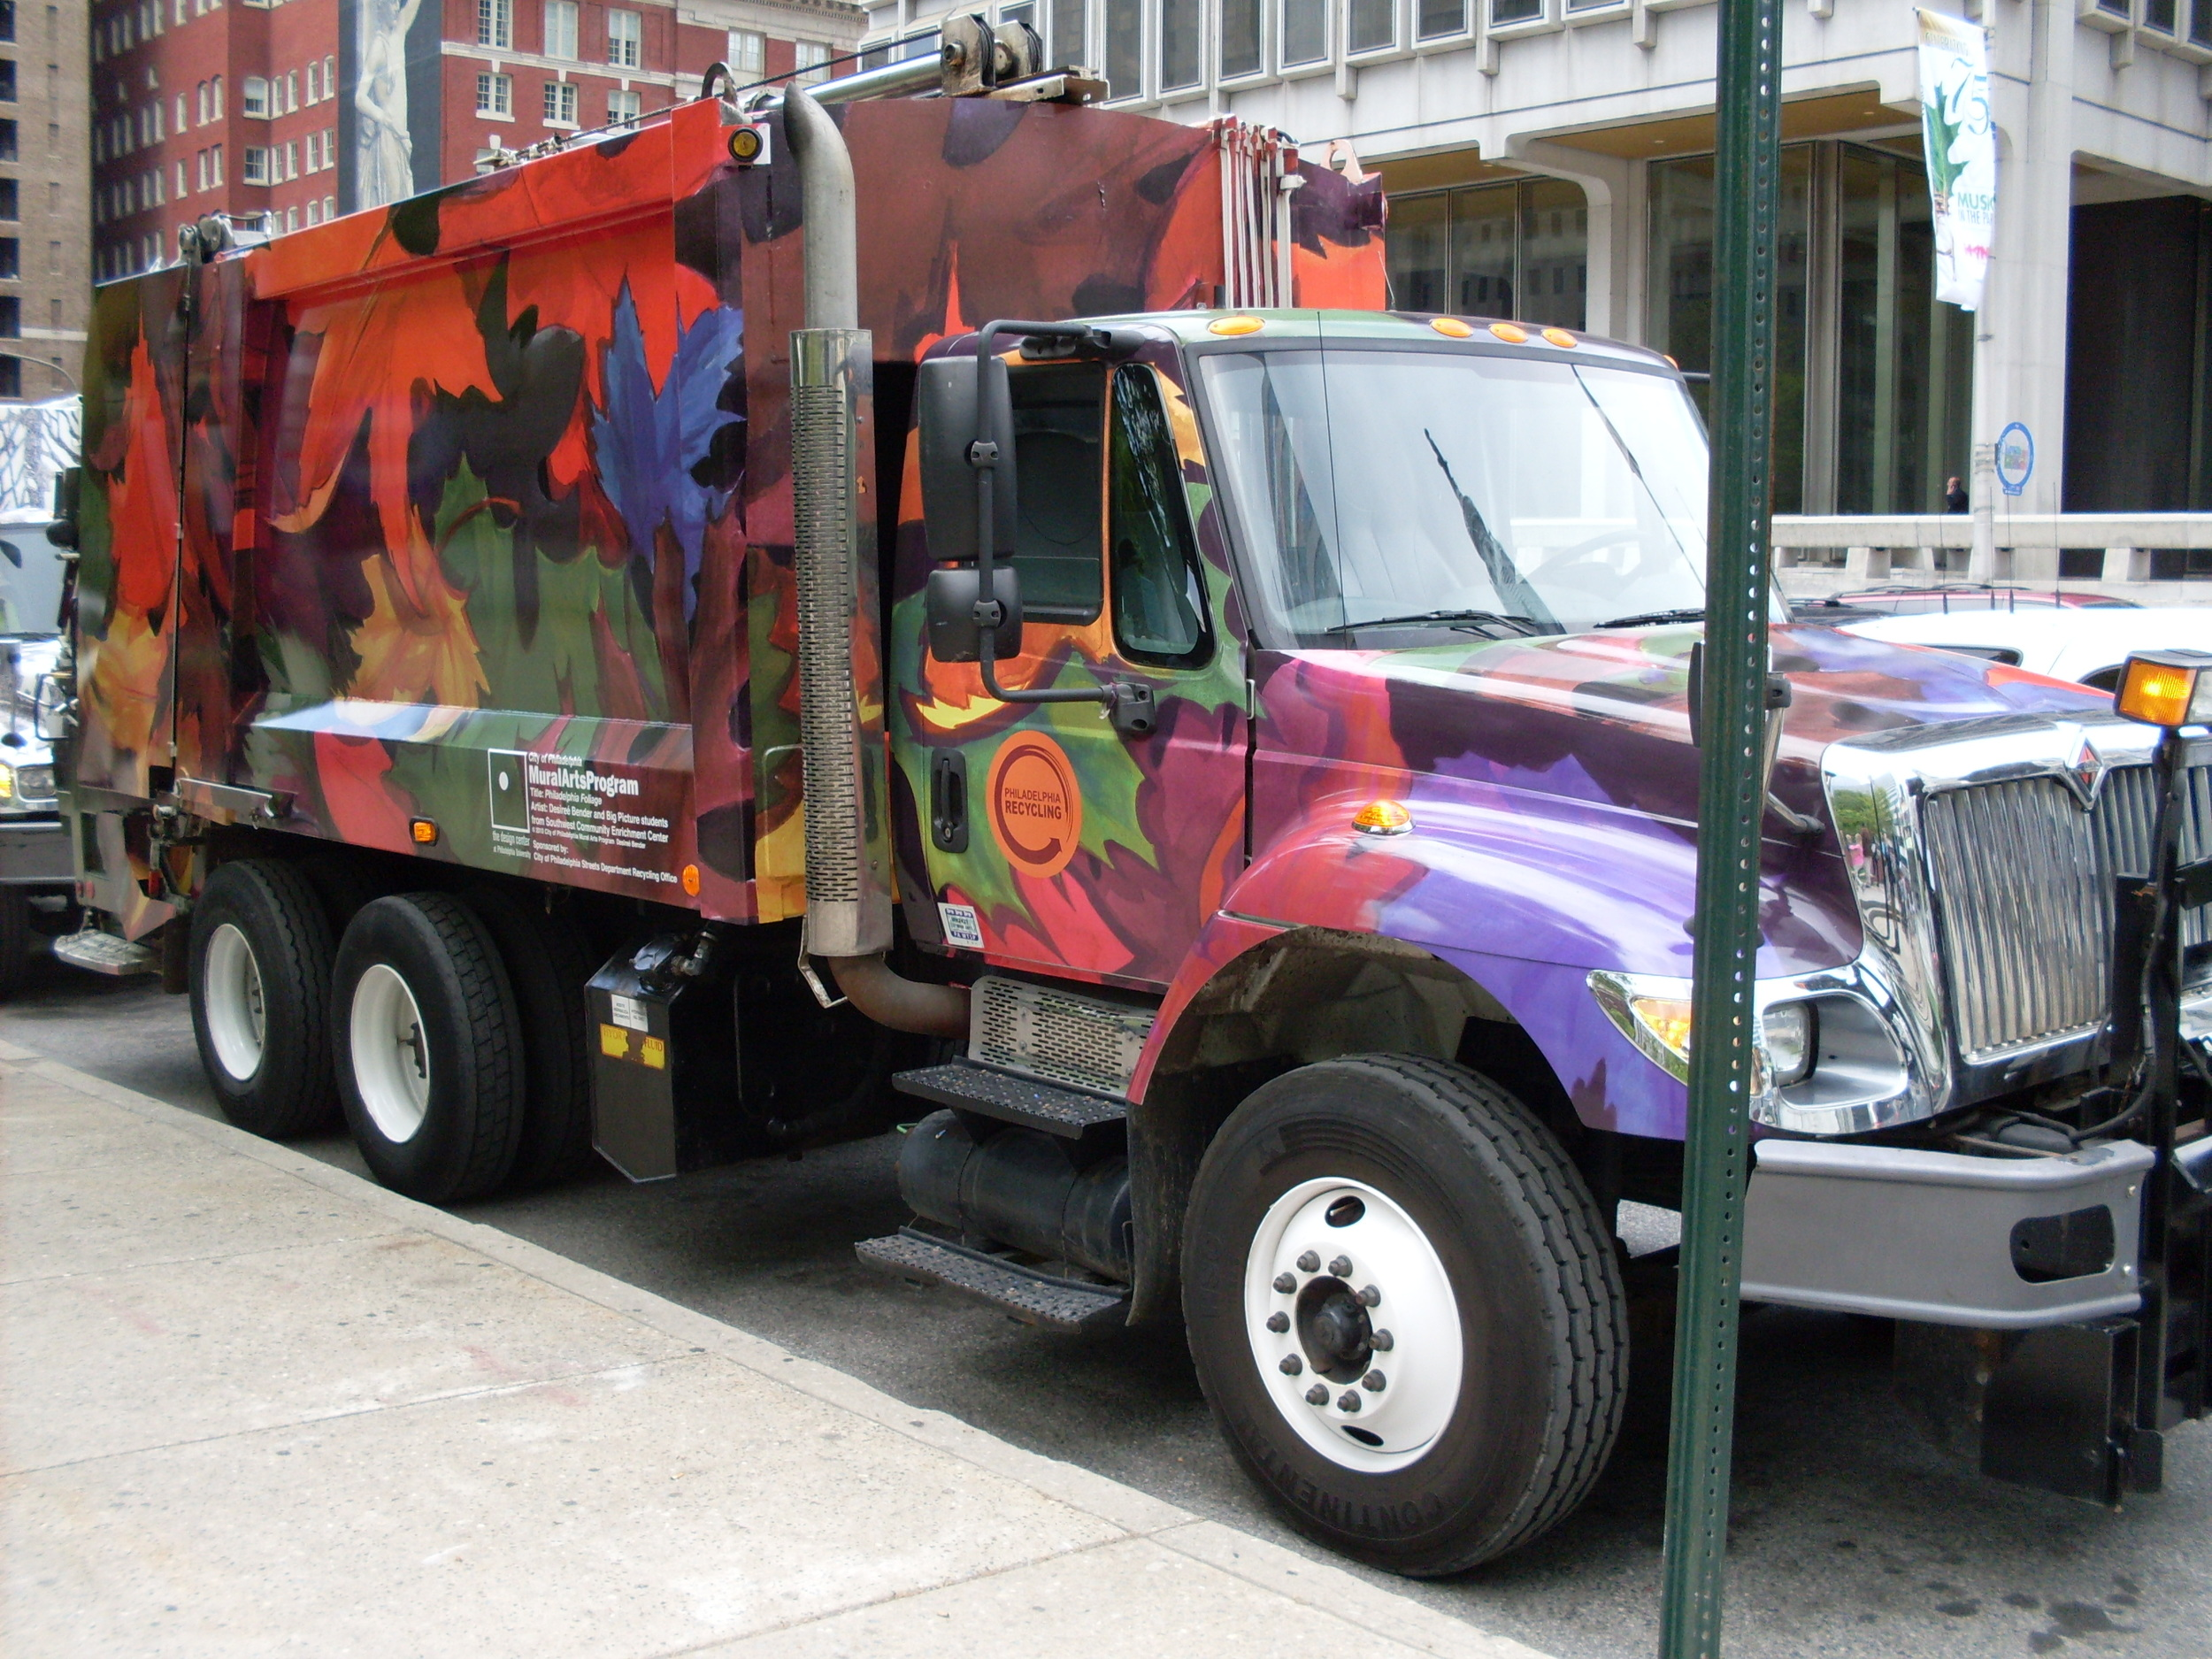 City of Philadelphia, Streets Department Collection Vehicle, Mural Arts Program